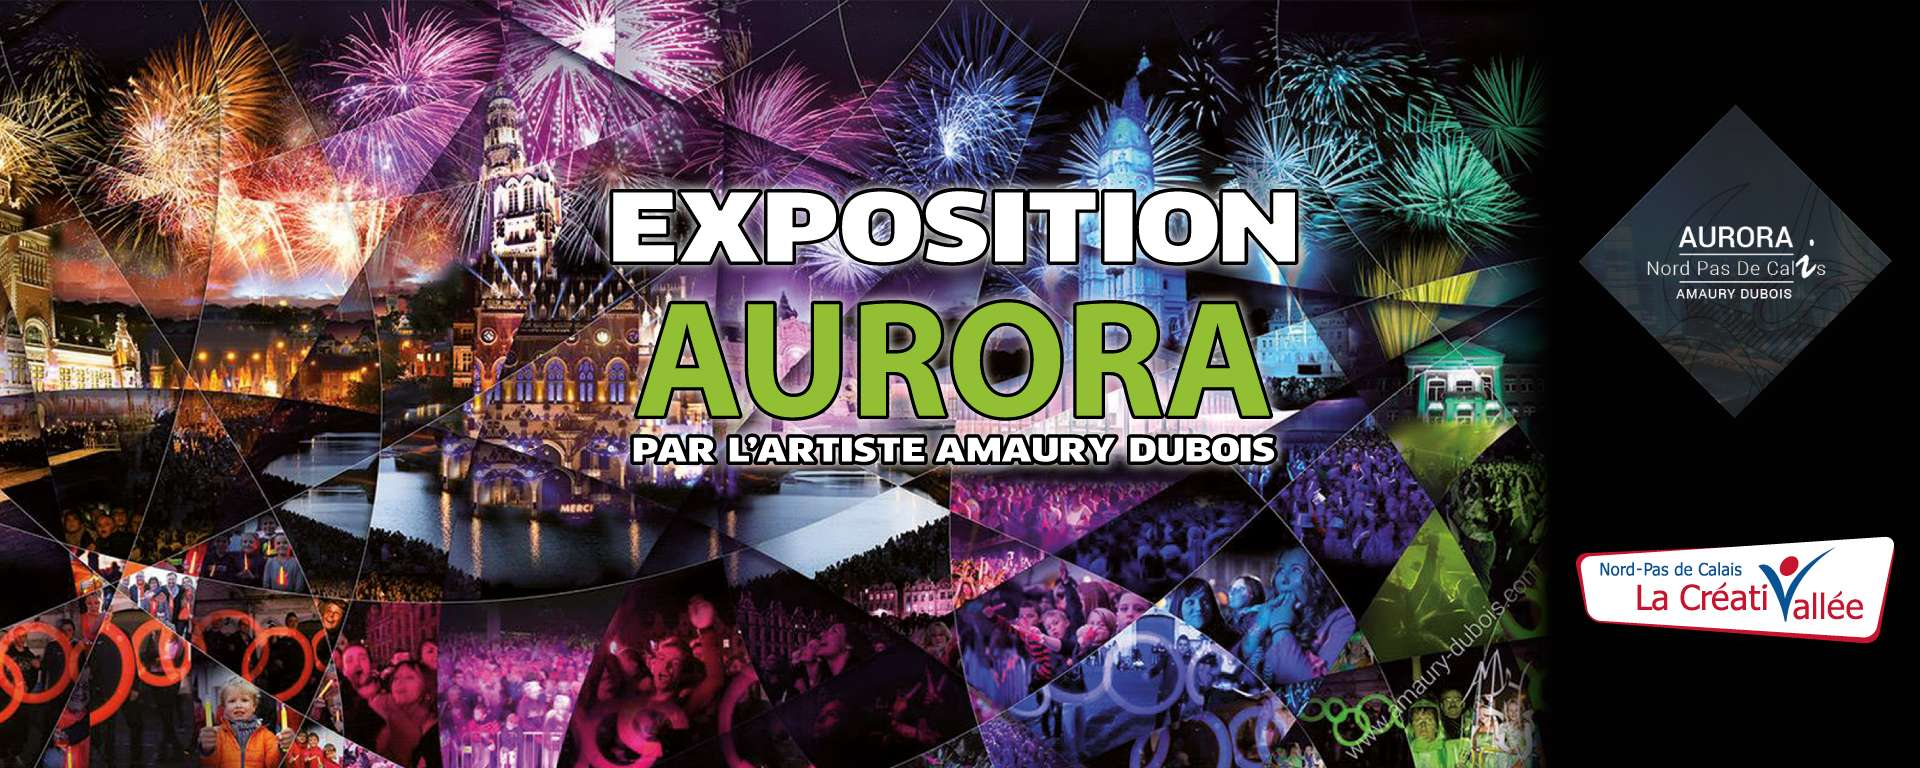 Vernissage de l'expostion Aurora